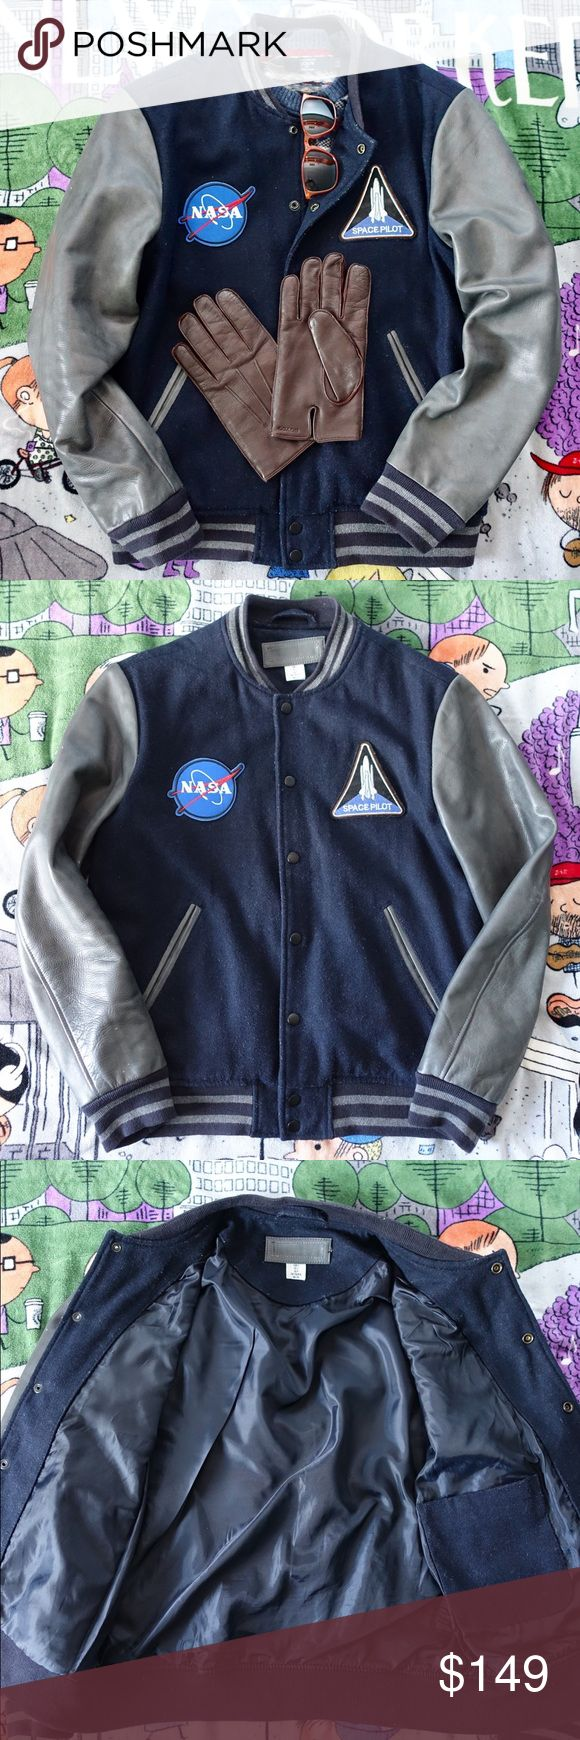 NASA Custom Patched Vintage Leather Varsity Jacket NASA Custom Patched Vintage Leather Varsity Jacket. Sized small. Wool panels and leather sleeves, excellent condition and very unique and great fall jacket! Listing because of requests, if I don't sell this I'd rather keep it. Thanks for looking! Custom Vintage Jackets & Coats Bomber & Varsity